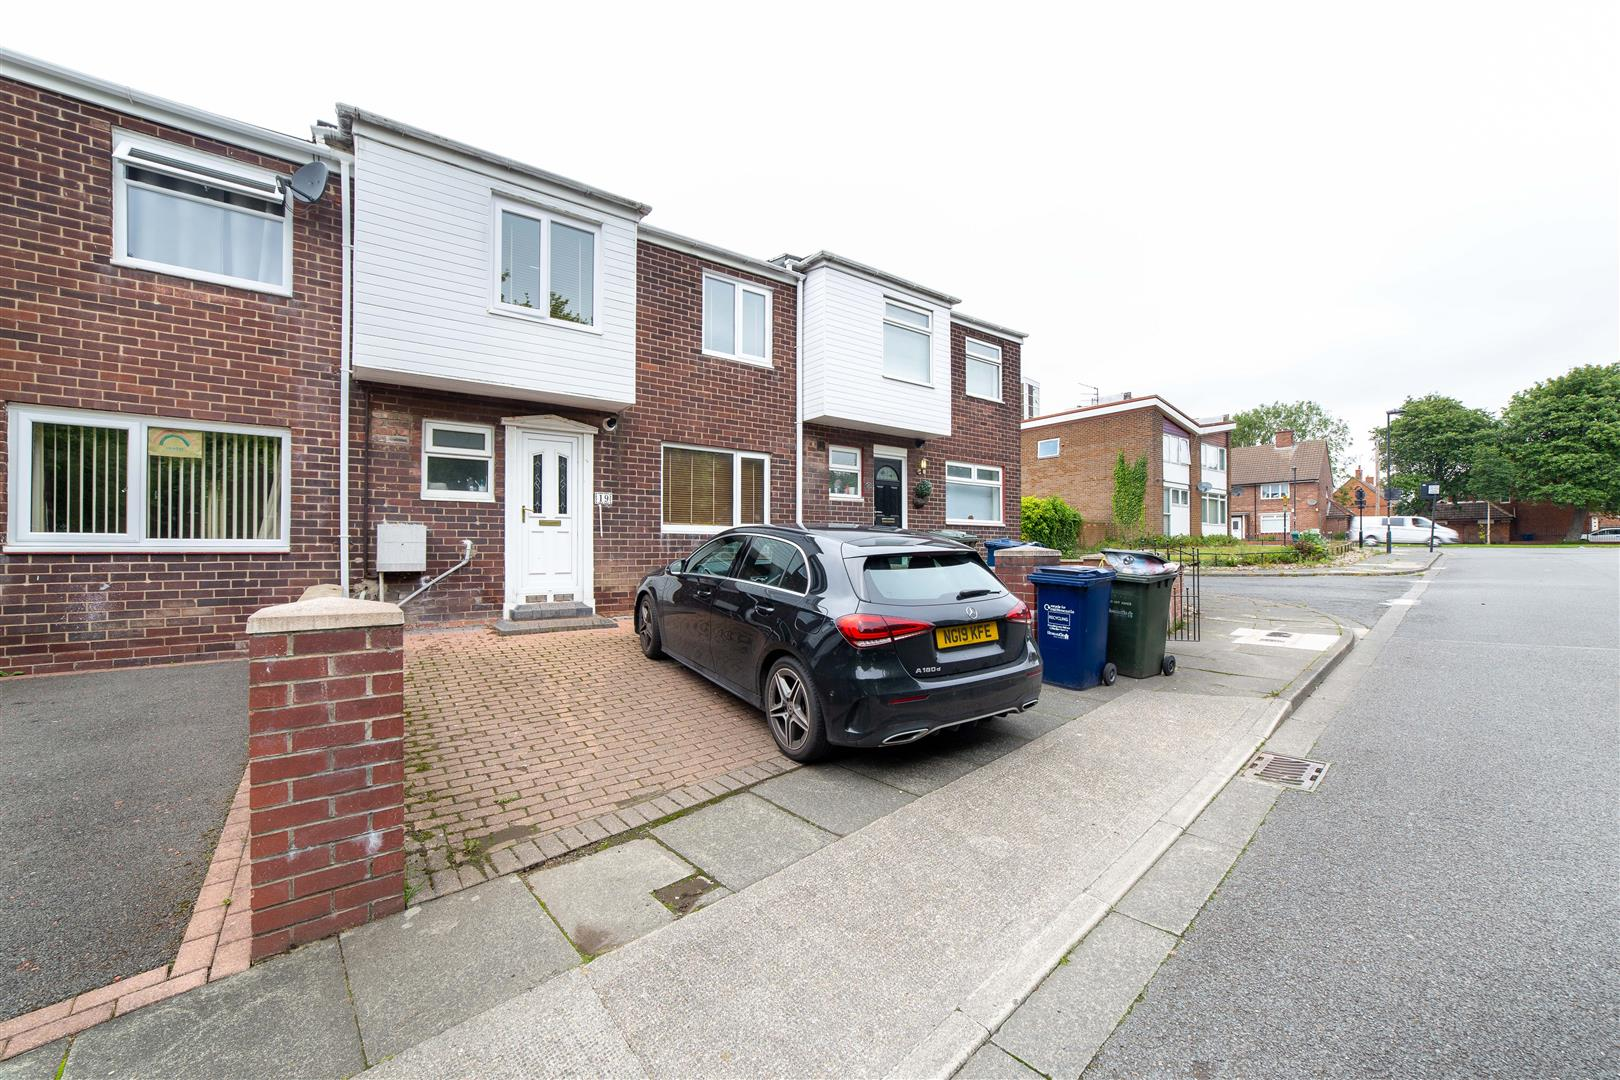 3 bed terraced house to rent in Henry Square, Newcastle Upon Tyne, NE2